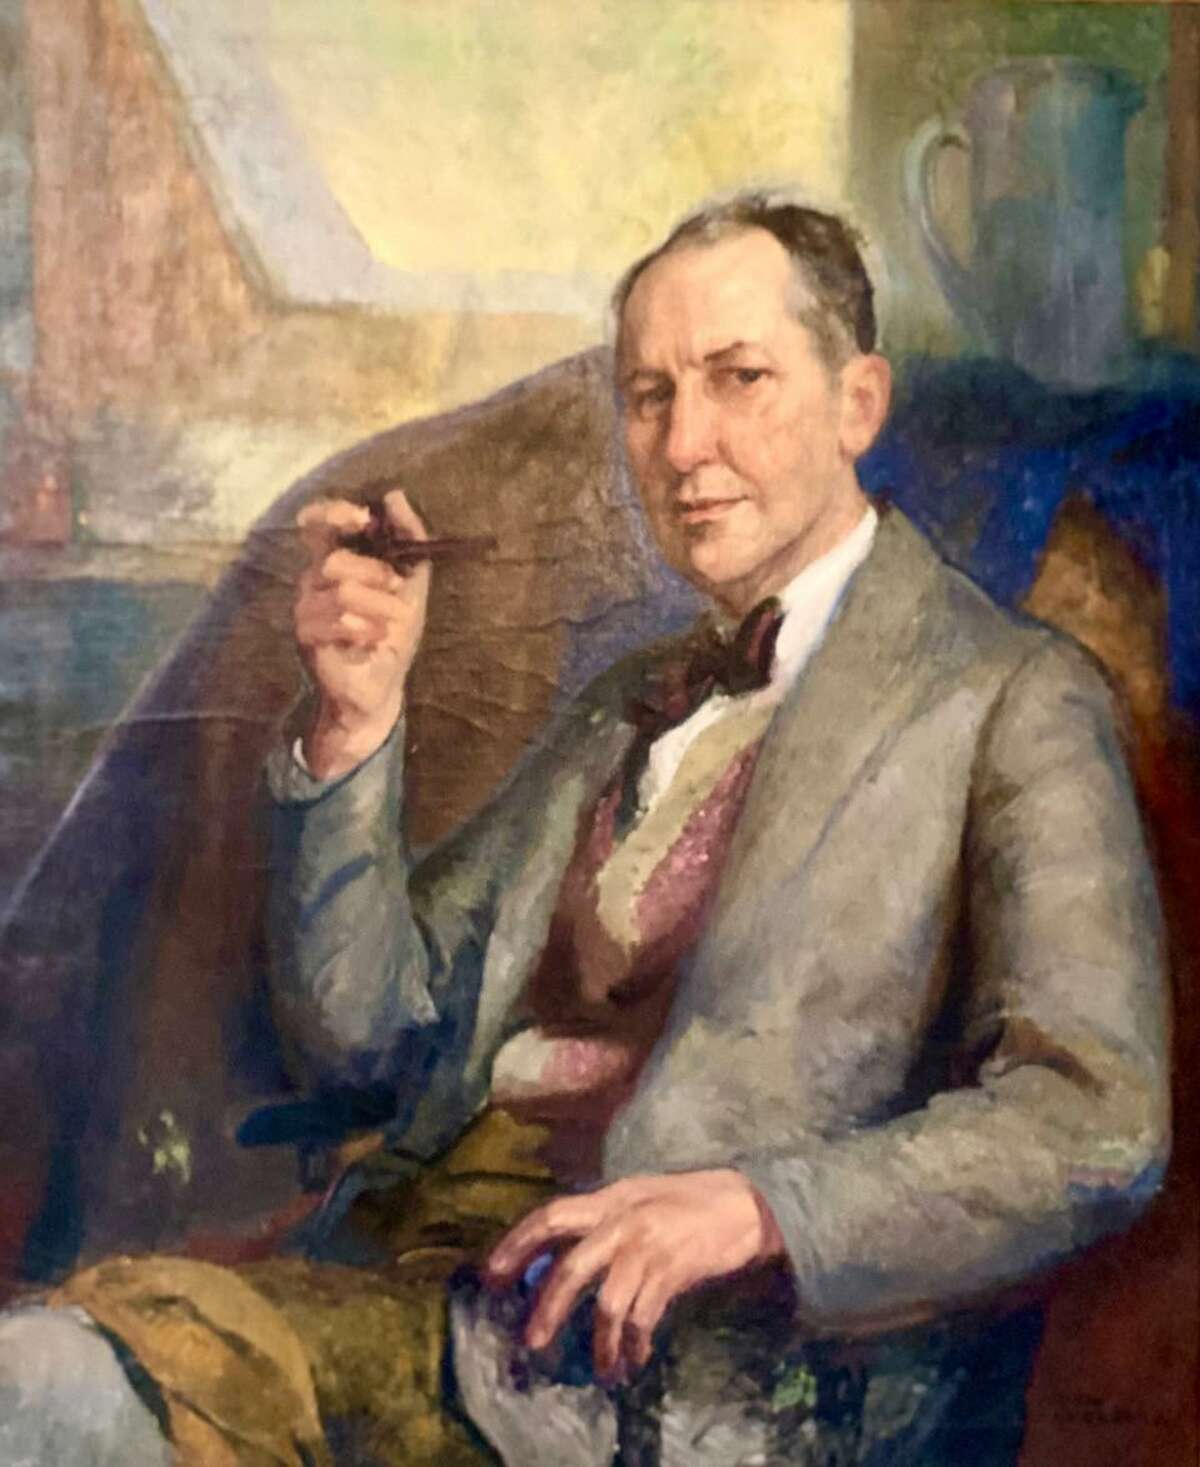 Portrait of George Hand Wright, an internationally acclaimed early Westport artist, by Karl Anderson, another of Westport's famed artists.